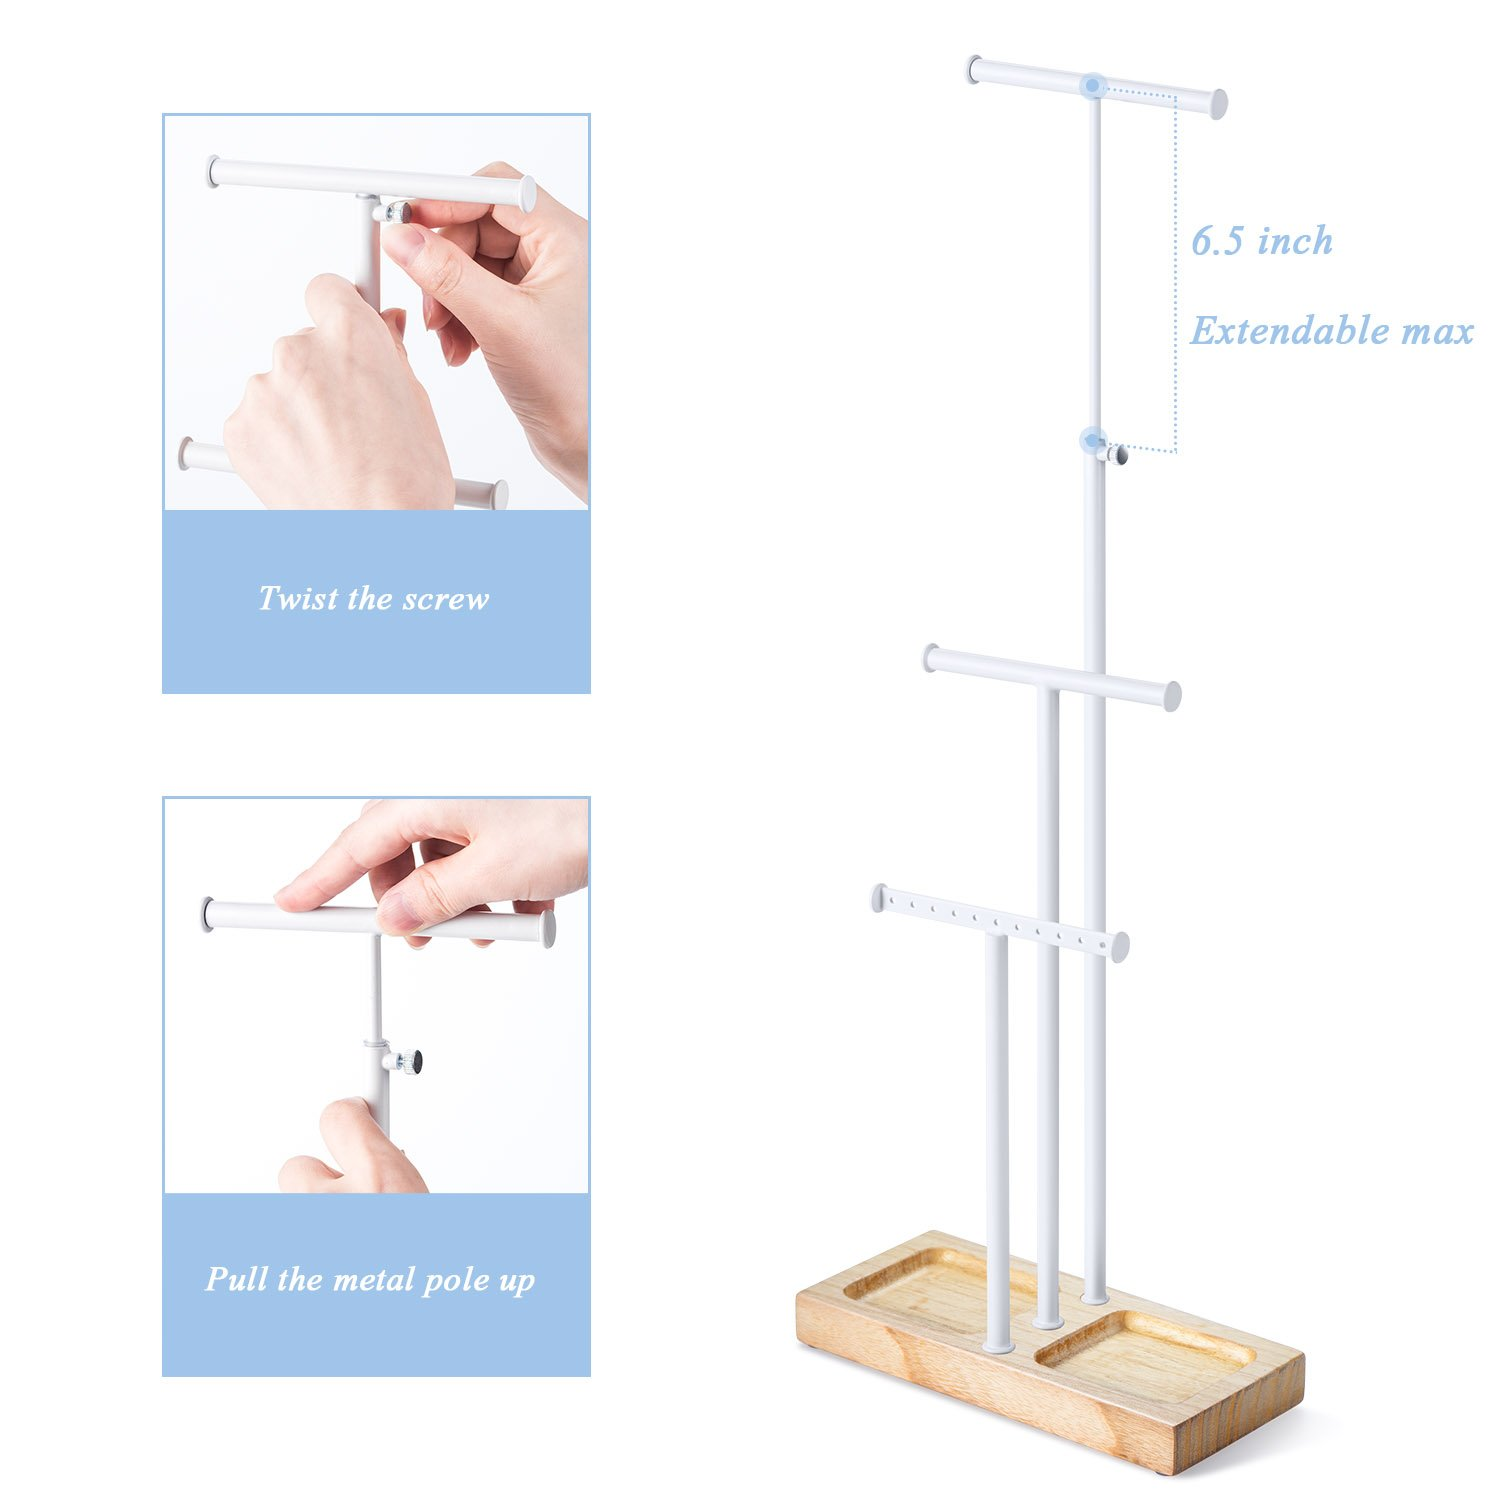 Love-KANKEI Jewelry Tree Stand White Metal & Wood Basic - Adjustable Height with Large Storage for Necklaces Bracelets Earrings Natural Wood by Love-KANKEI (Image #3)